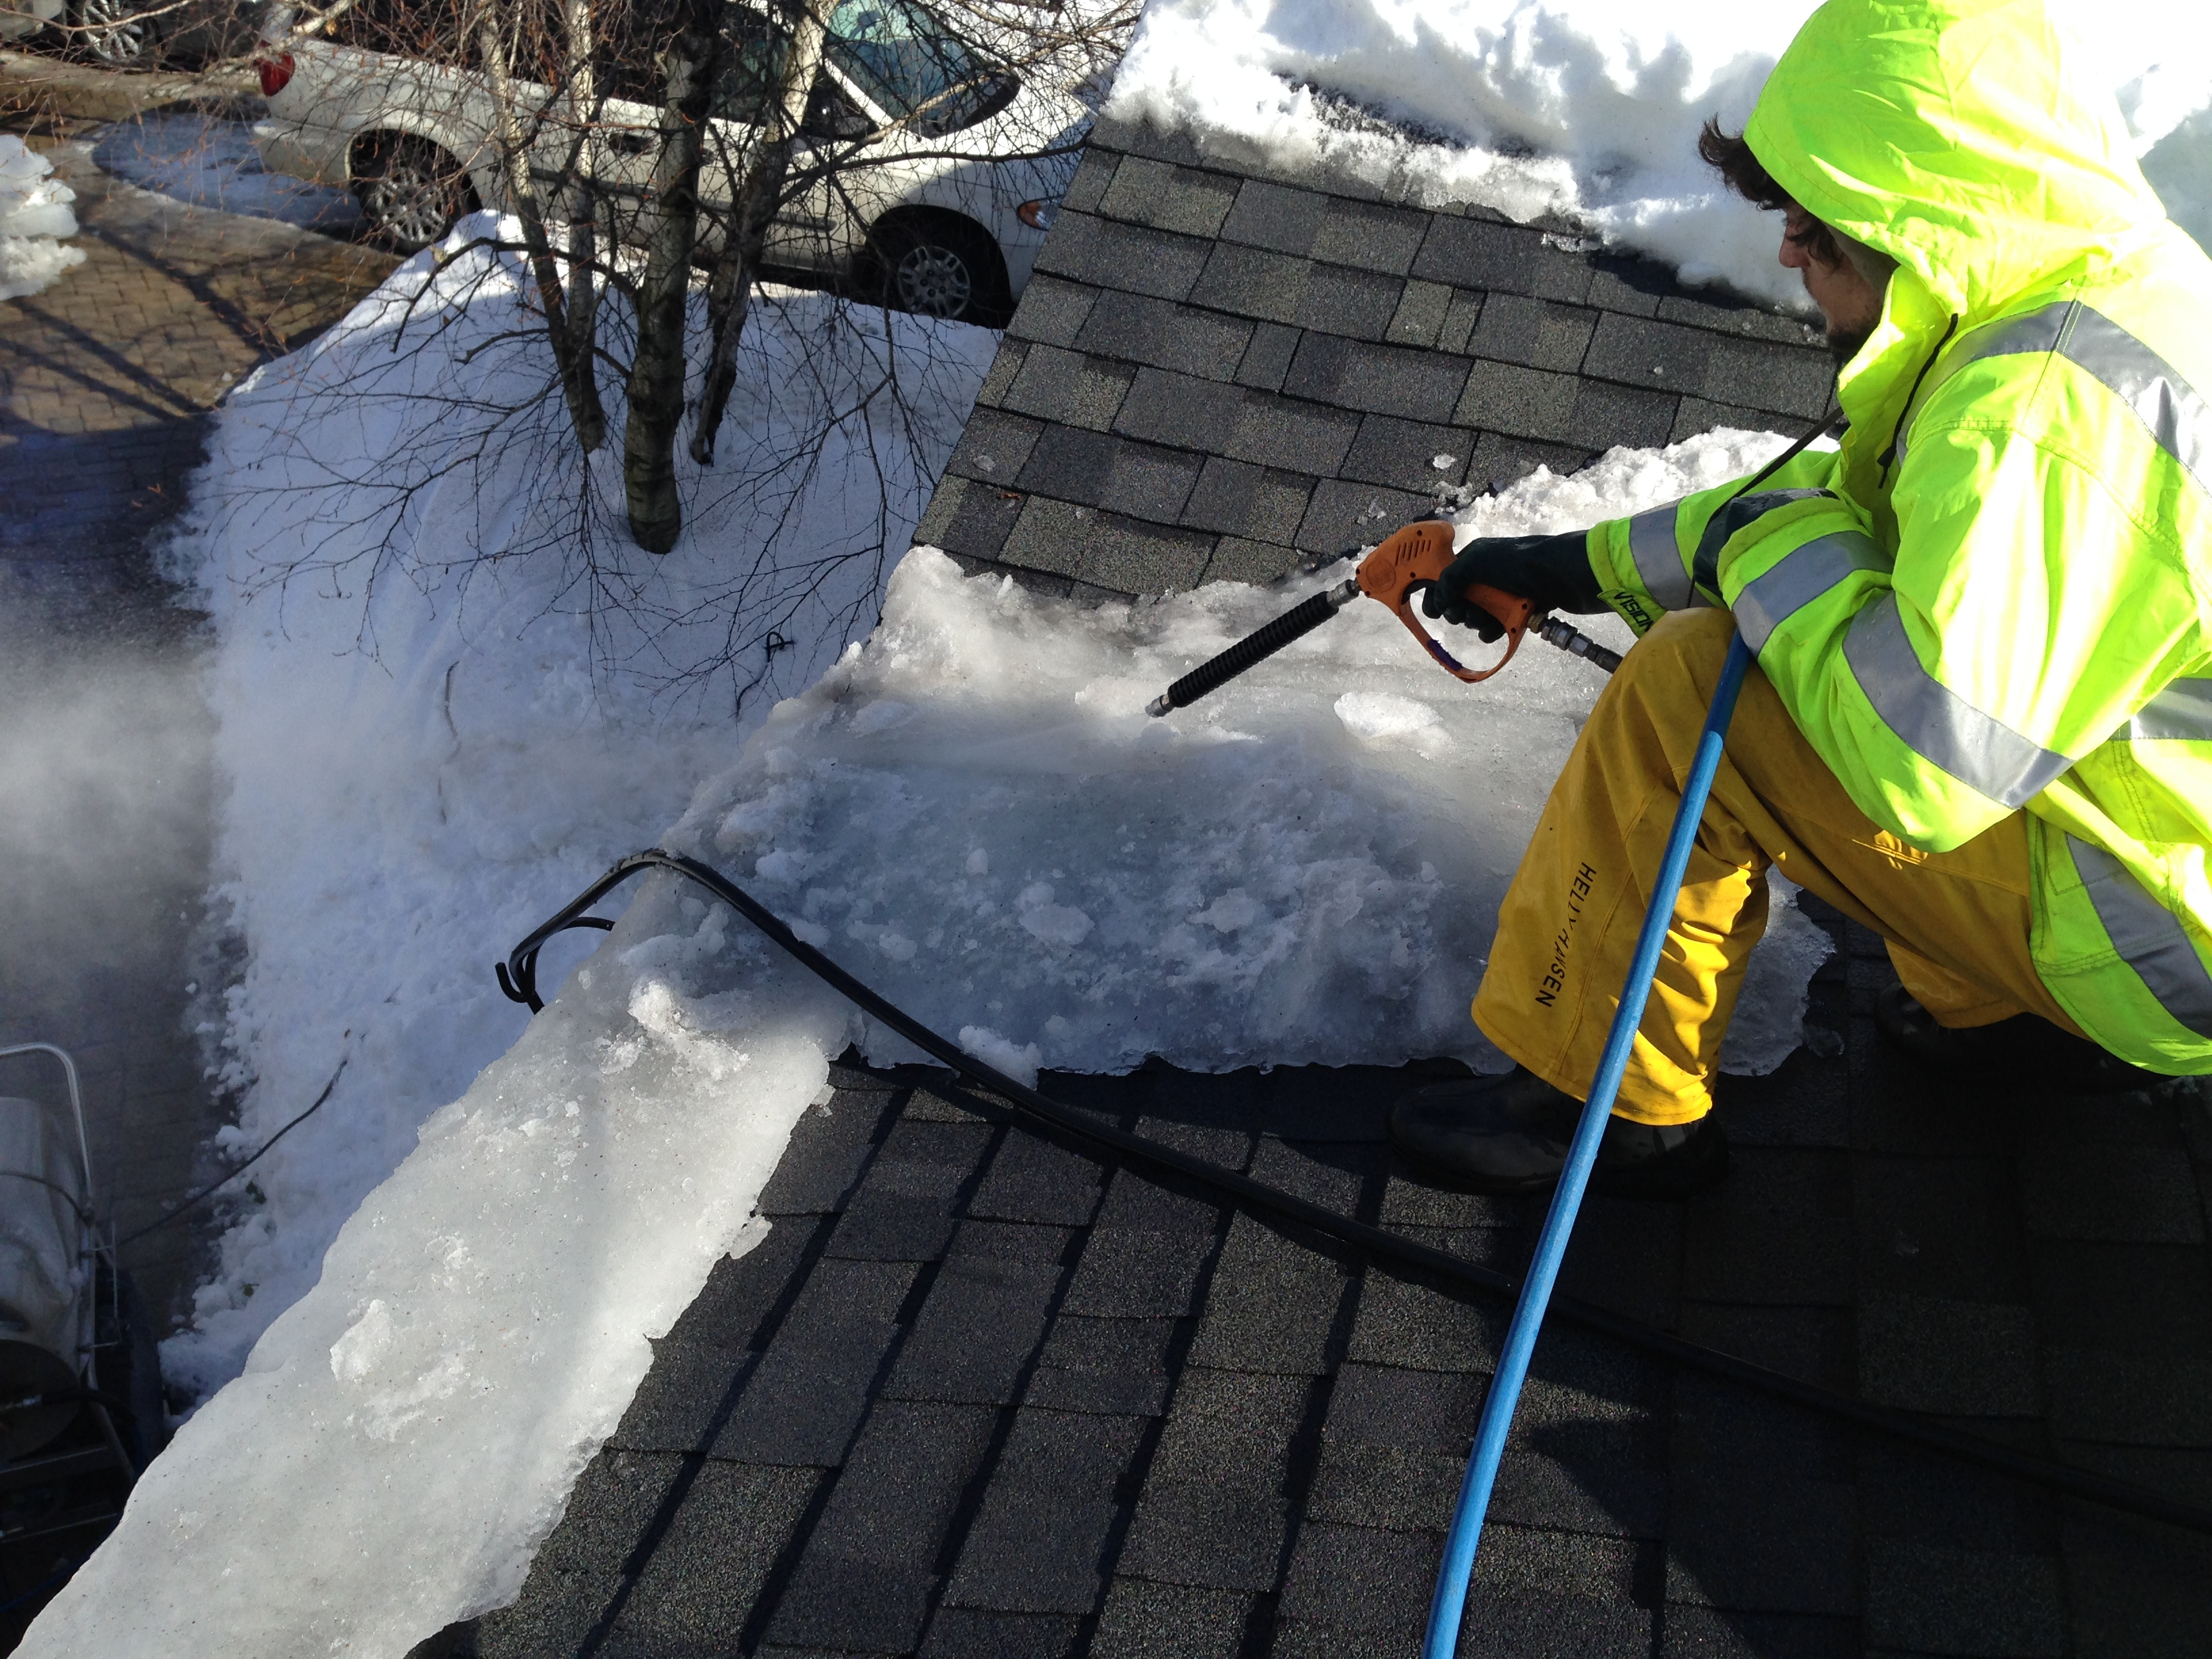 rtd on a roof using steam to remove the ice dam - call us 24 hours a day - roof to deck ice dam removal